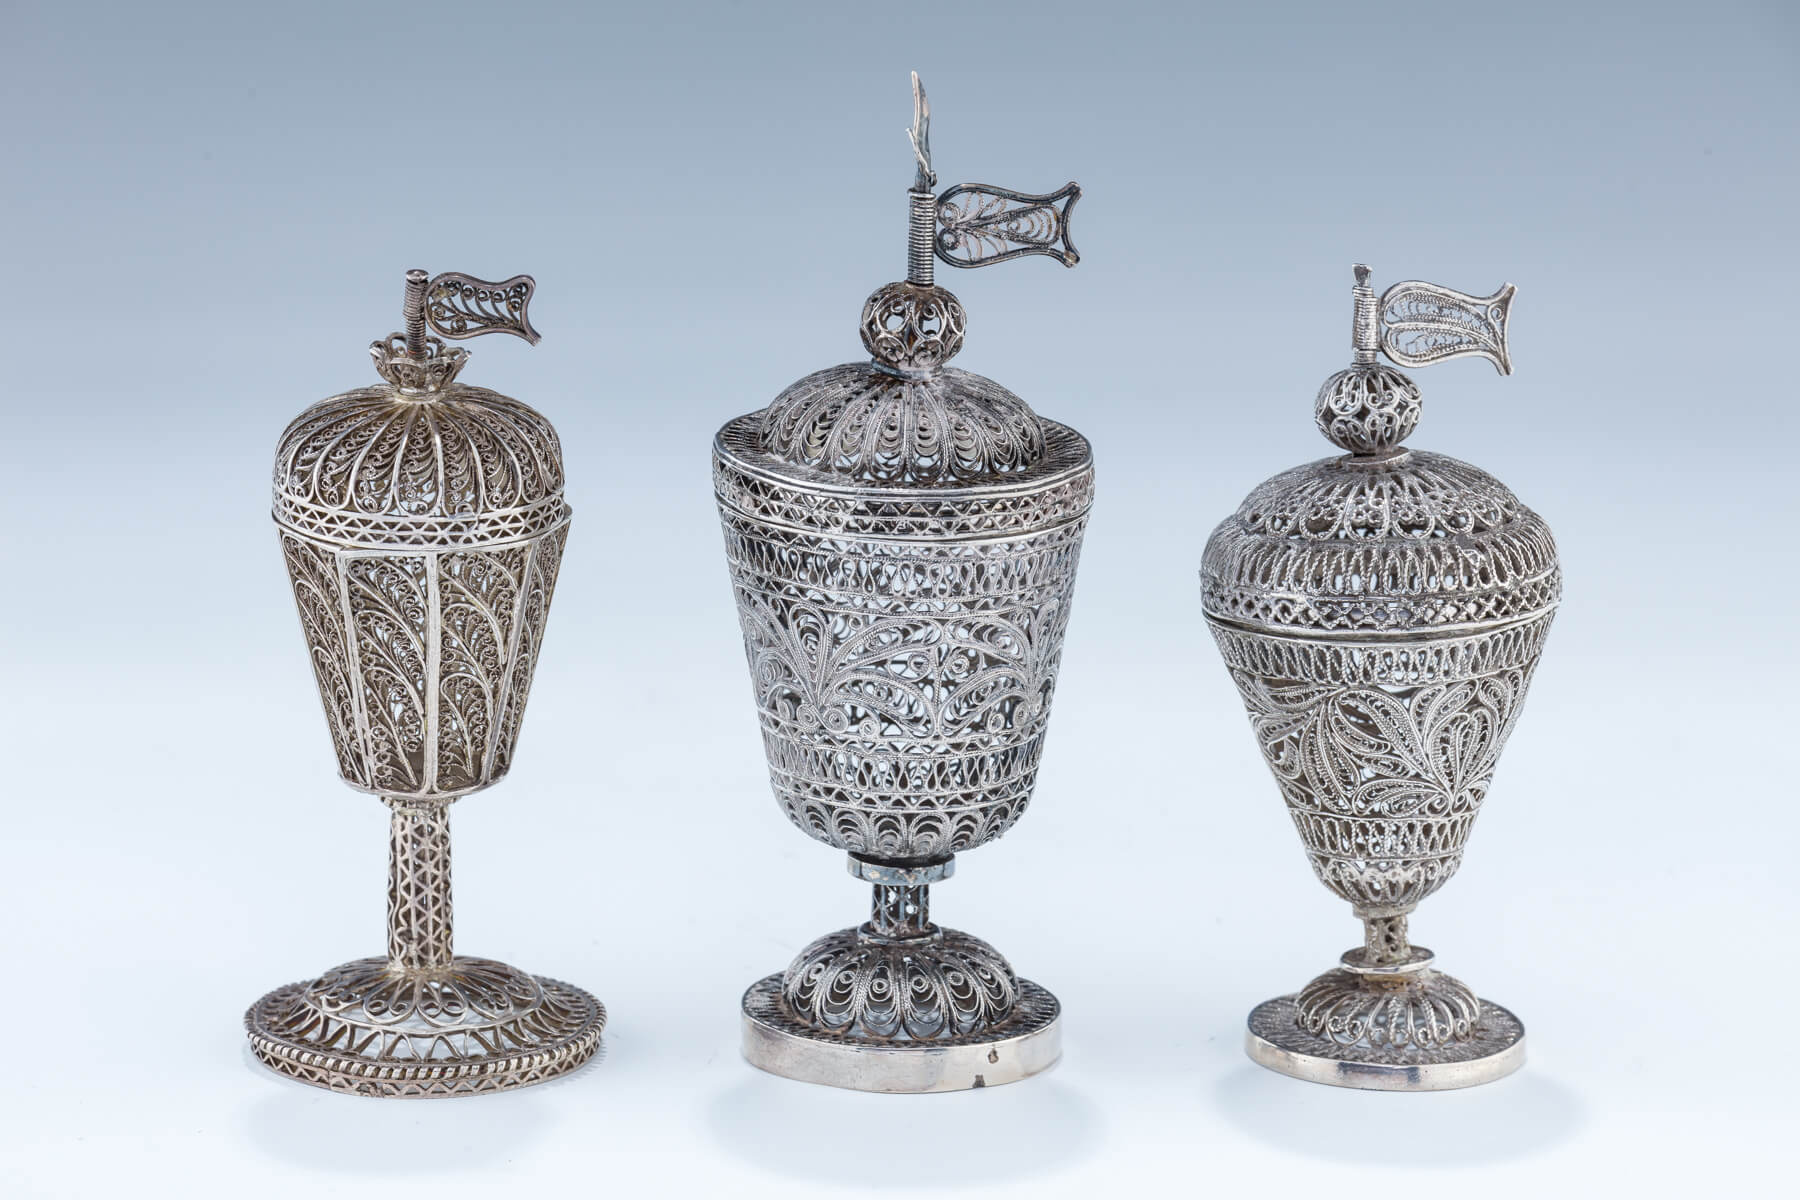 16. Three Silver Filigree Spice Containers